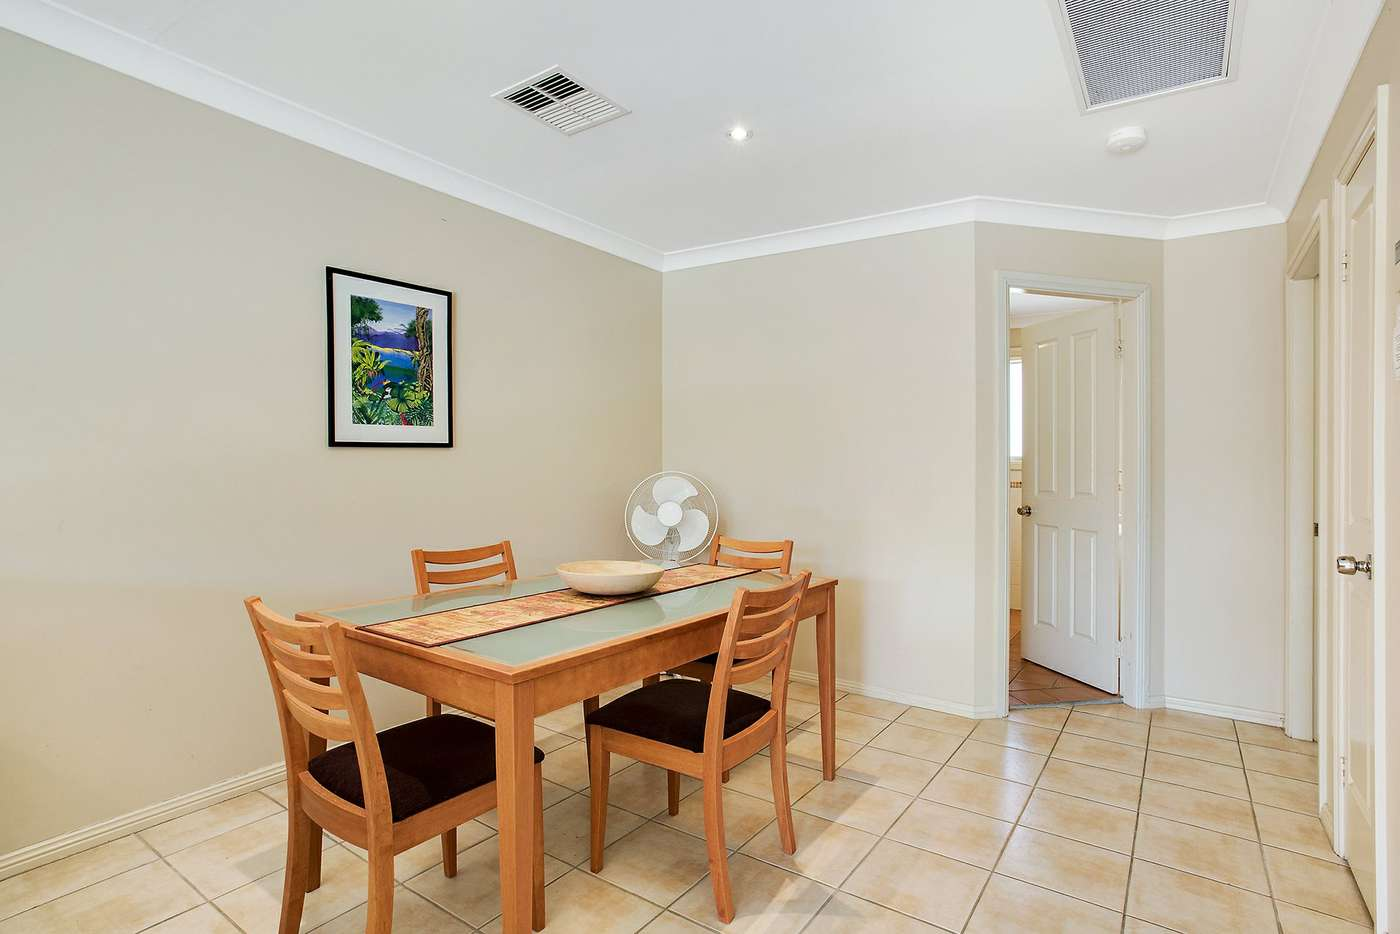 Seventh view of Homely house listing, 5/1 Tomaree Street, Nelson Bay NSW 2315